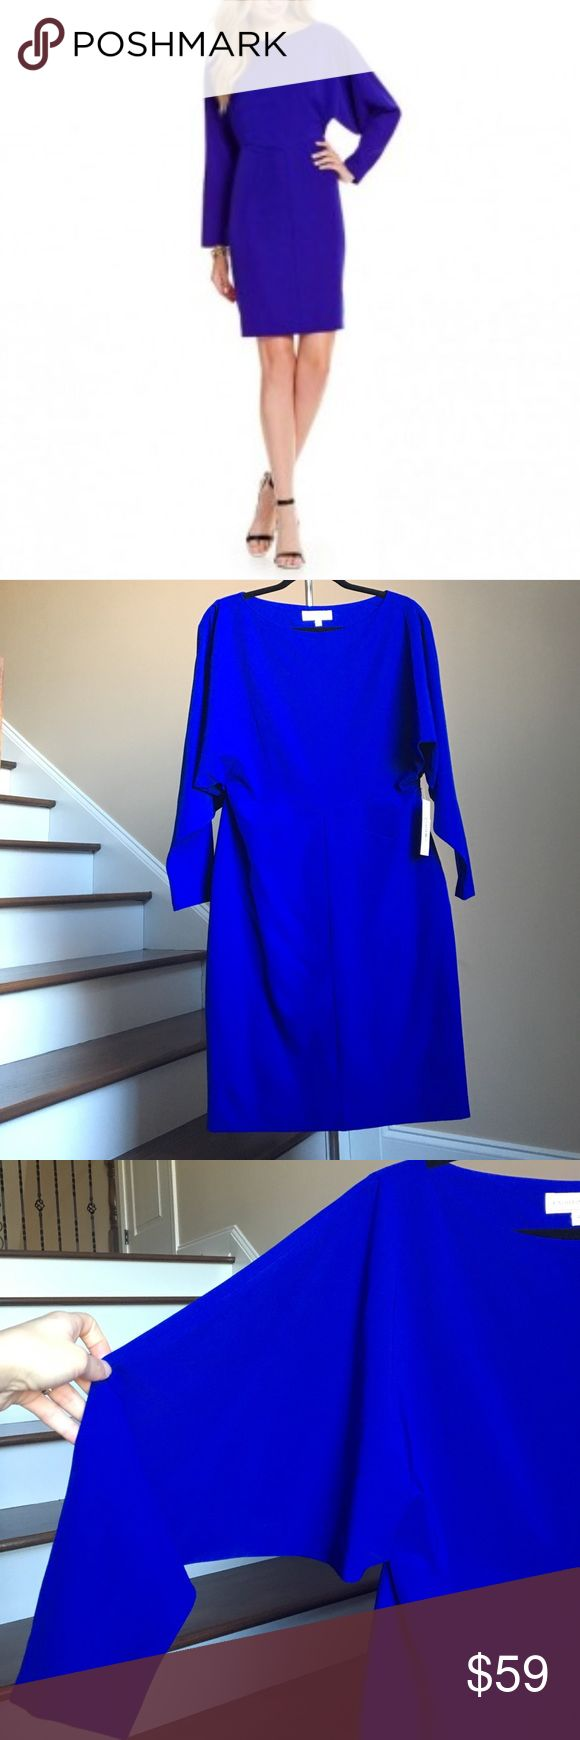 🆕 Katherine Kelly Dress Stunning bat-wing sleeve dress in cobalt color by Katherine Kelly. Concealed zipper closure on side, lined. Shell 90% Polyester, 10% Spandex. Lining 97% Polyester, 3% Spandex. 🚨Price firm unless bundled!🚨 Katherine Kelly Dresses